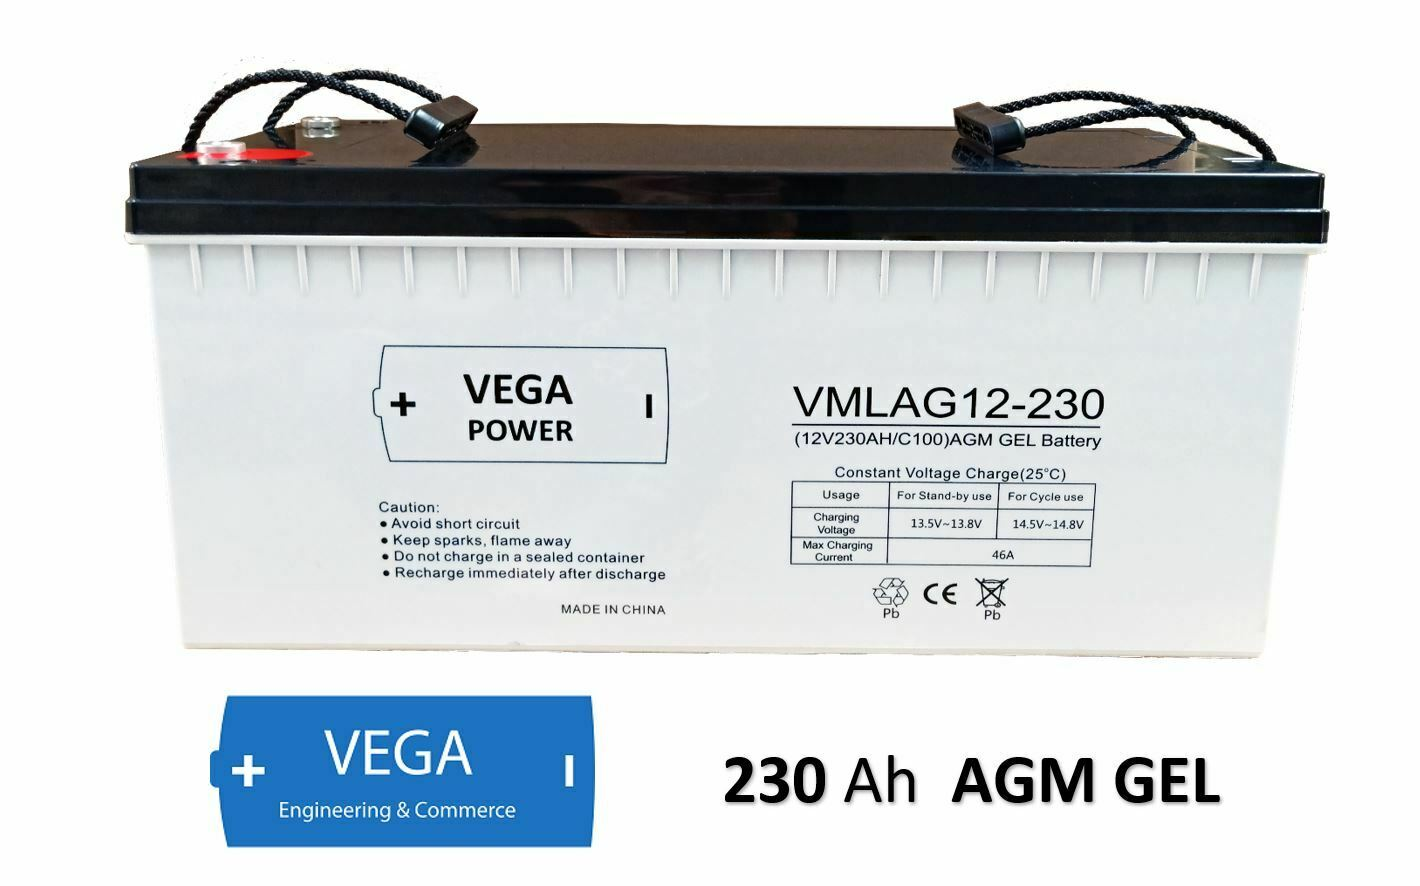 12V 230Ah C100 AGM GEL Batterie Akku Vega Power